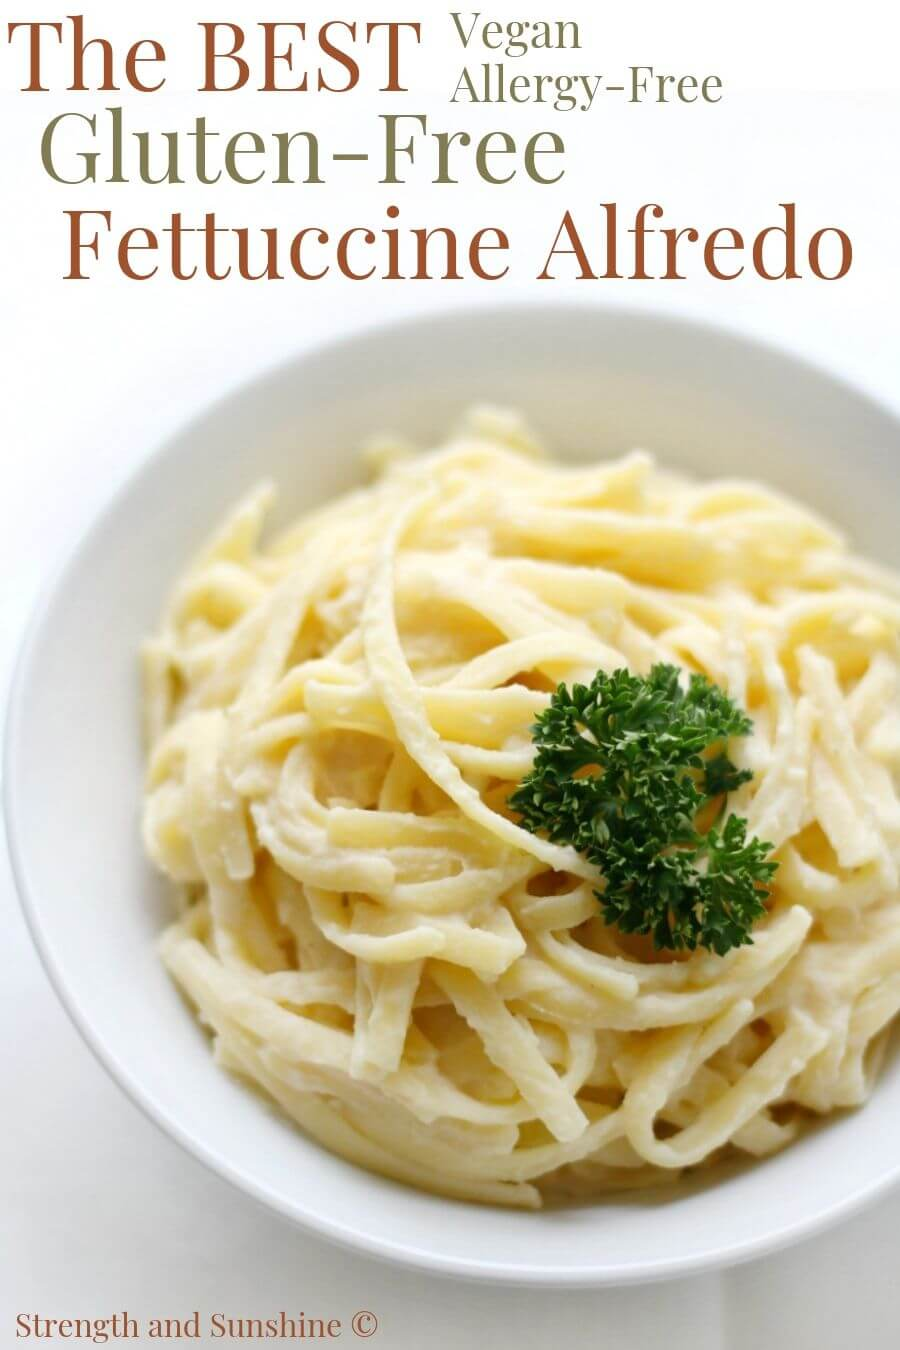 white bowl of gluten-free fettuccine alfredo with parsley and image text